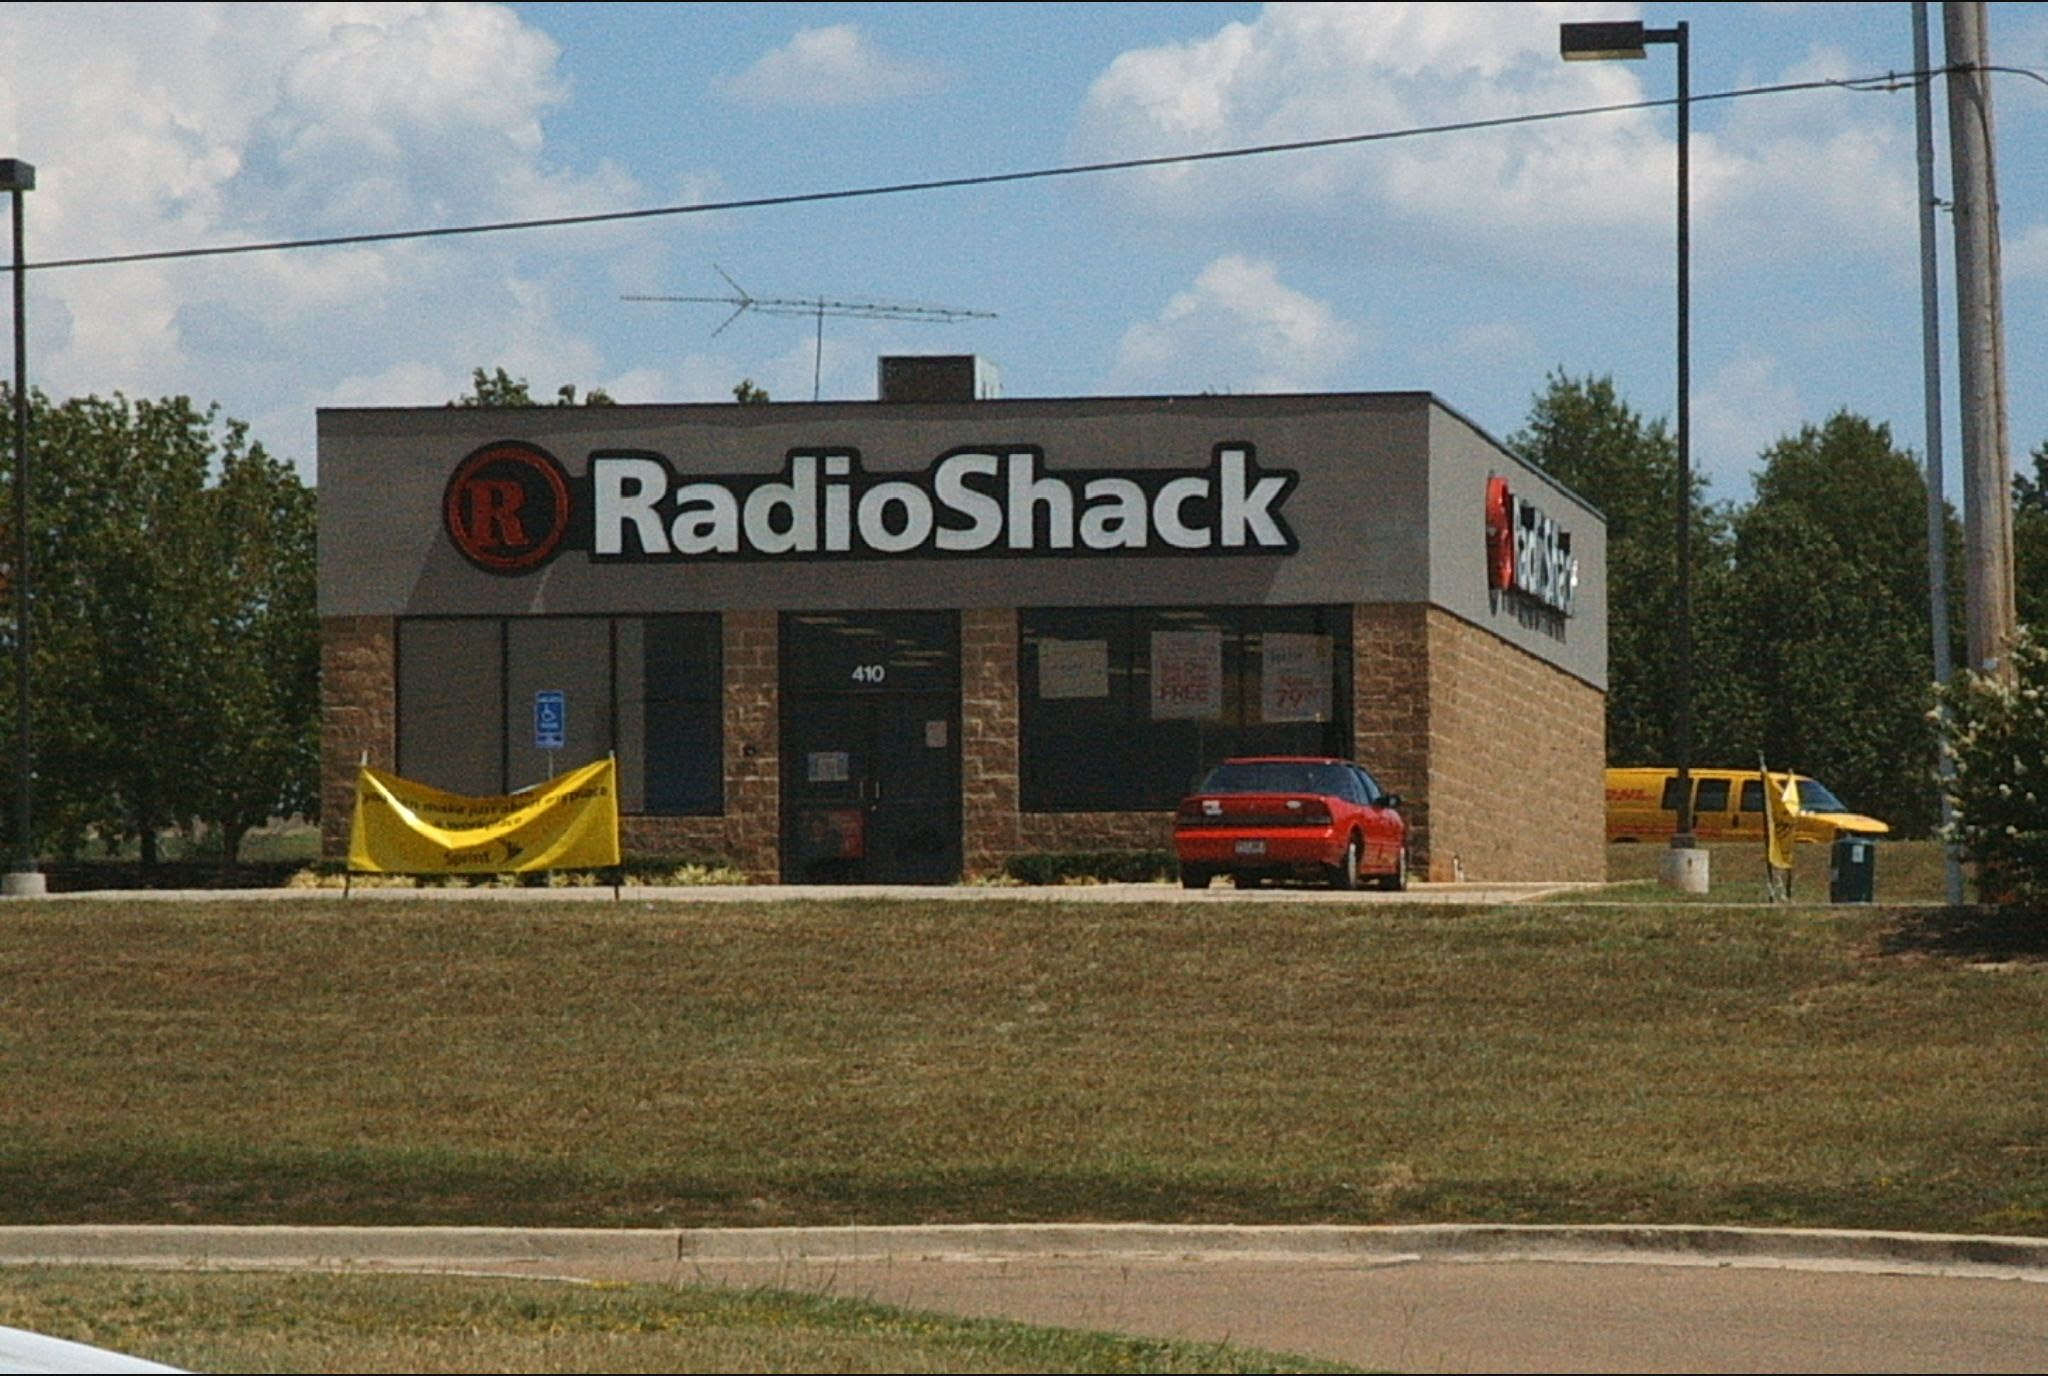 Radio Shack store in Texarkana, Texas